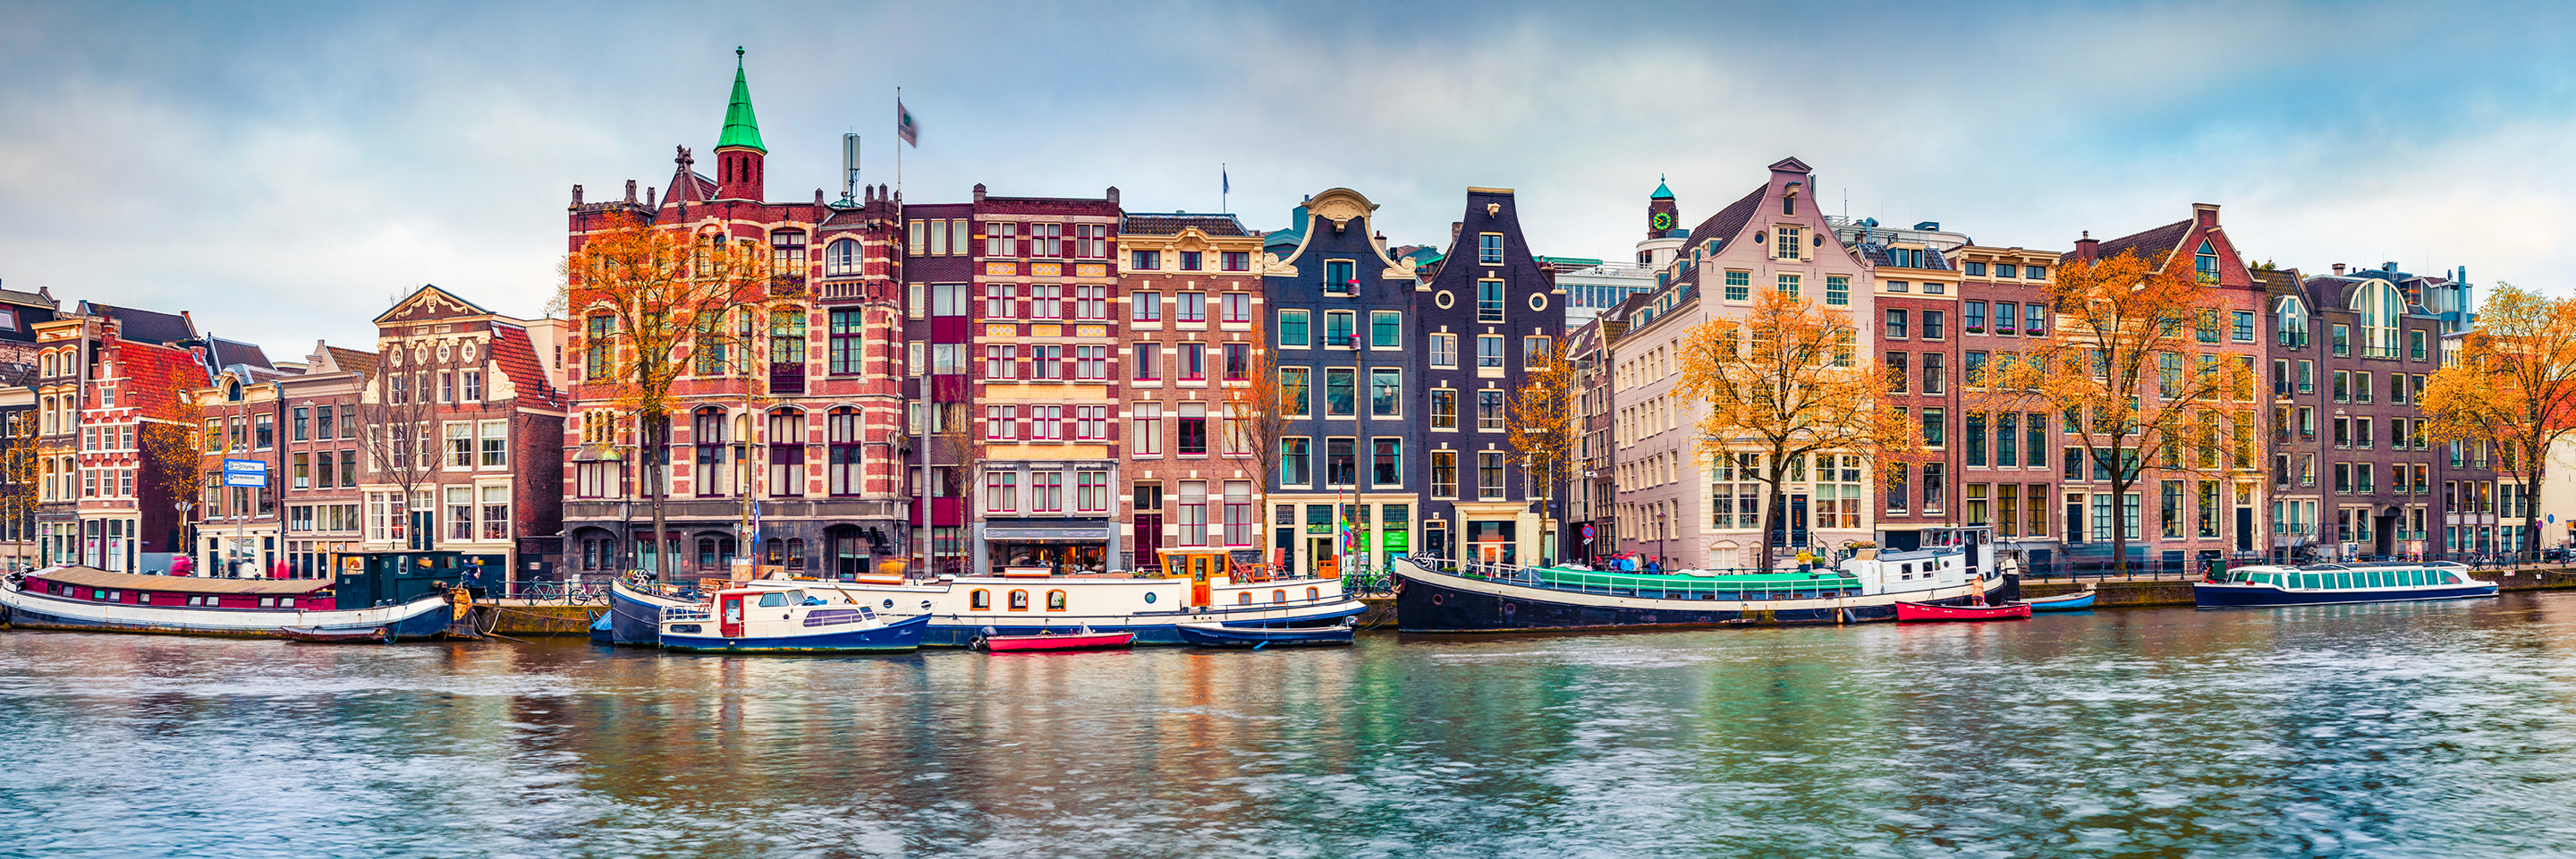 Tulip Time Cruise with 1 Night in Amsterdam & 3 Nights in   Paris